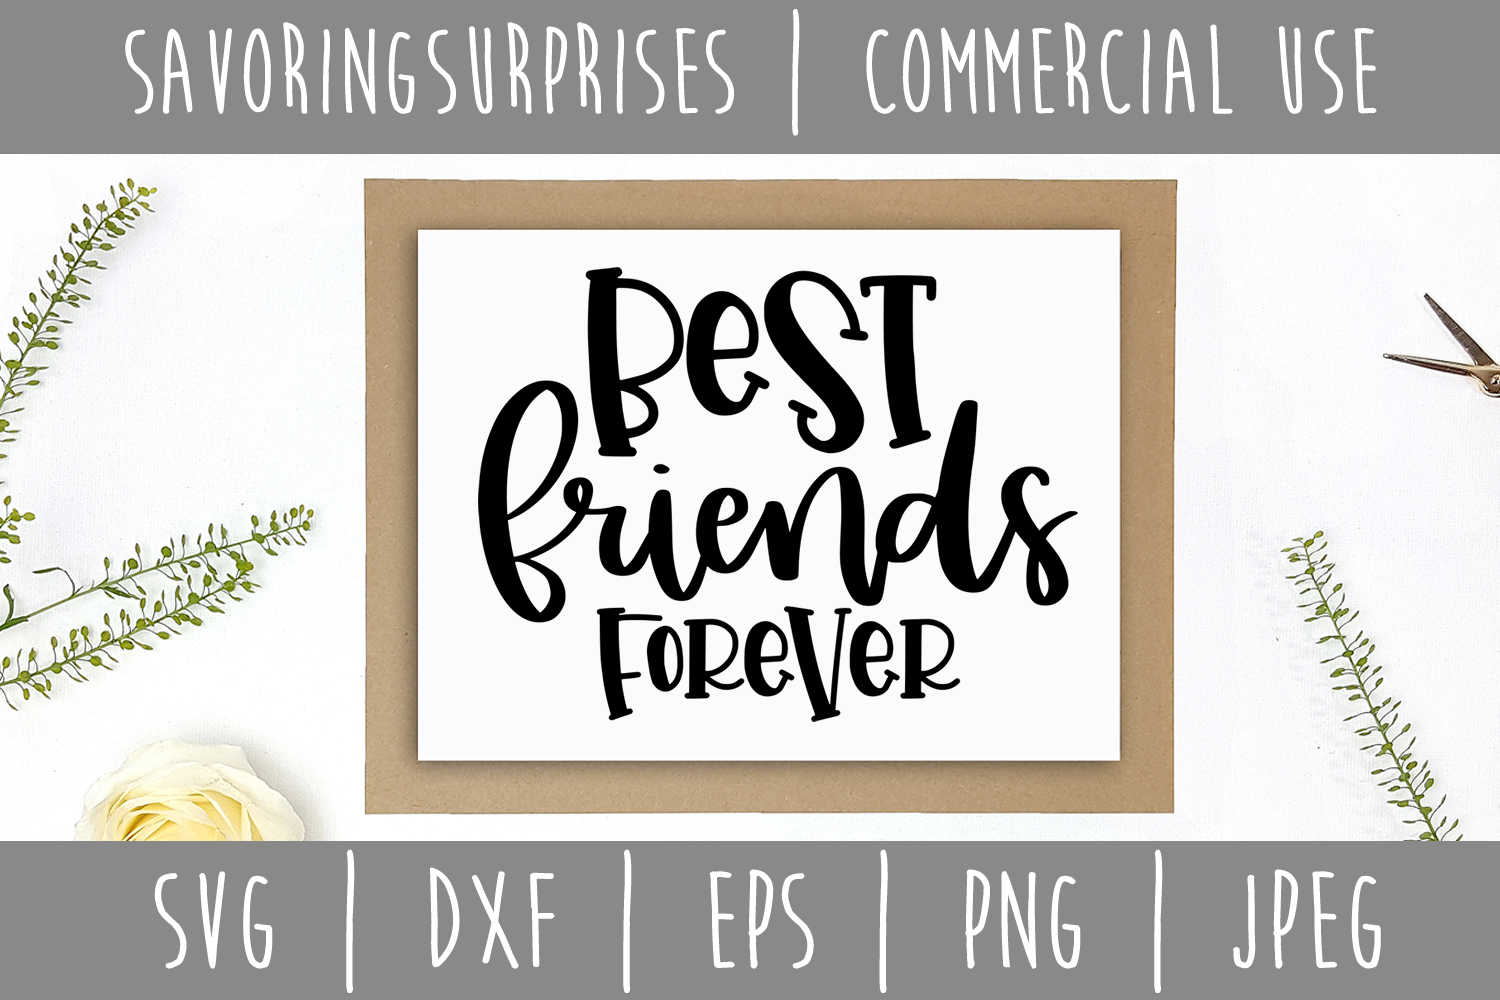 Best Friends Forever SVG, DXF, EPS, PNG JPEG example image 2